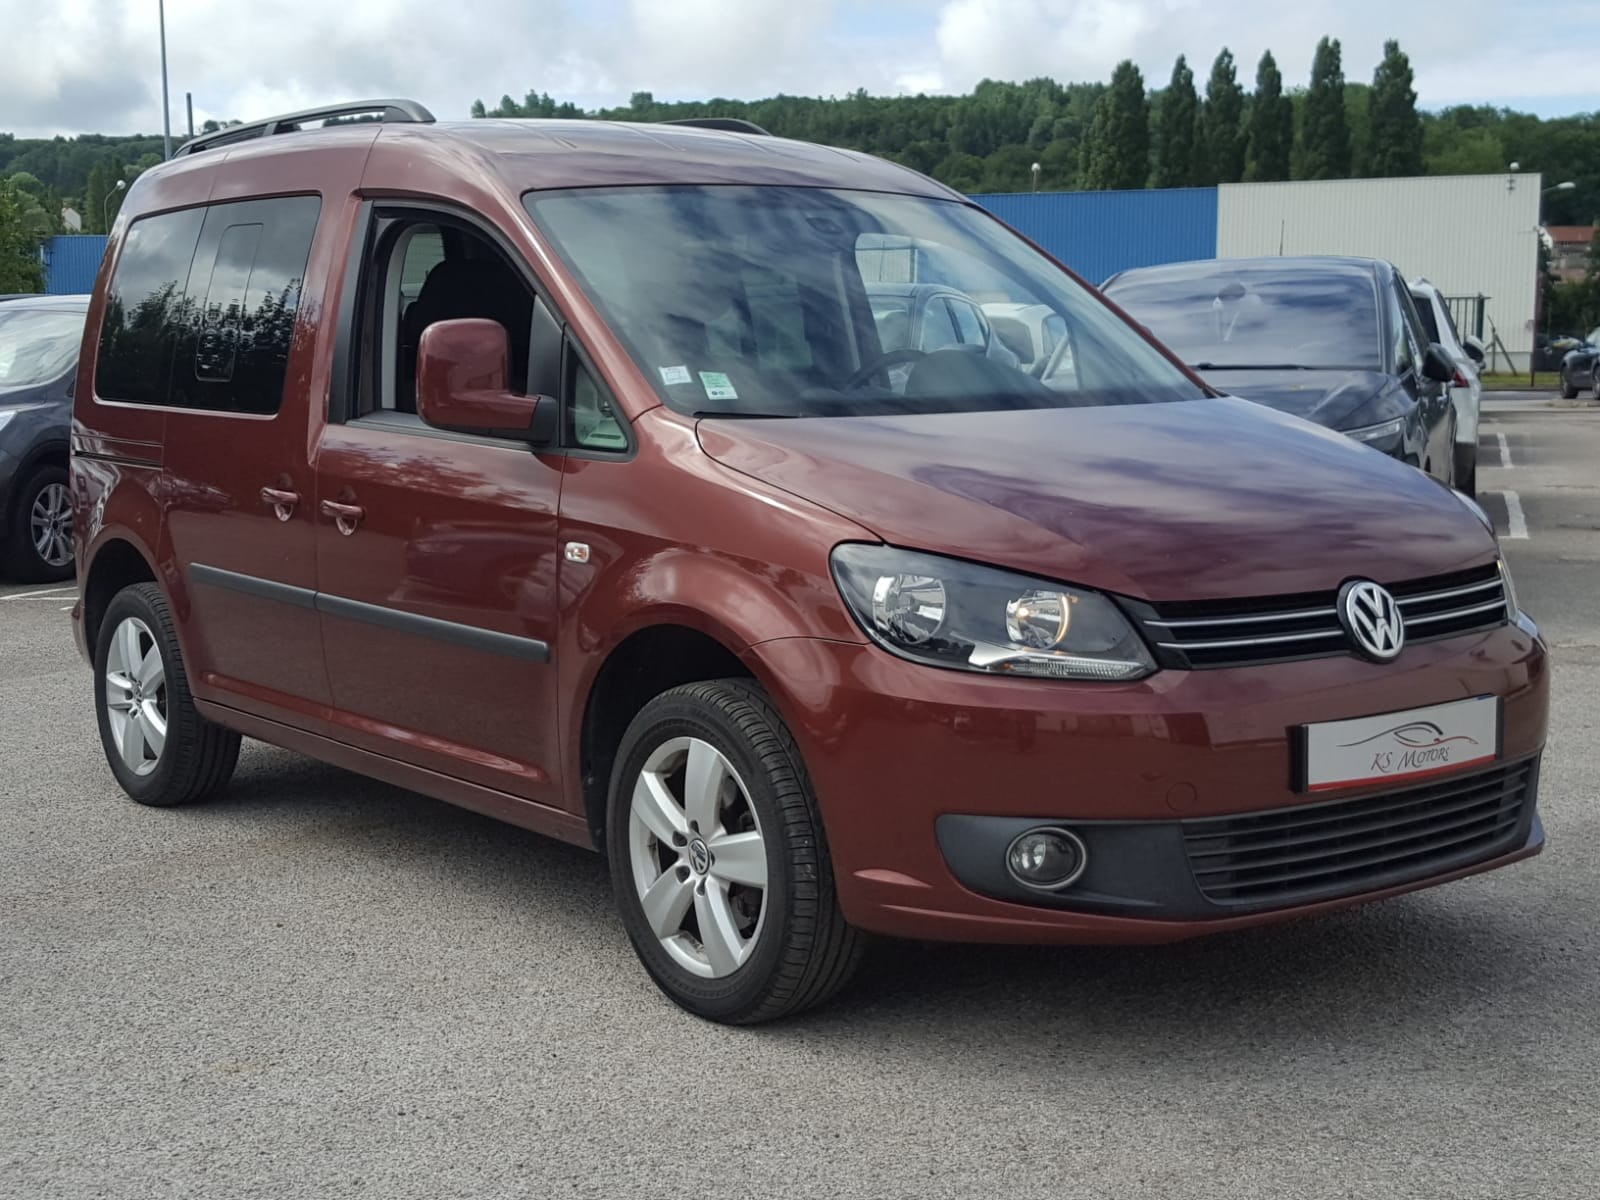 annonce volkswagen caddy 1 6 tdi 102 cv laurent. Black Bedroom Furniture Sets. Home Design Ideas